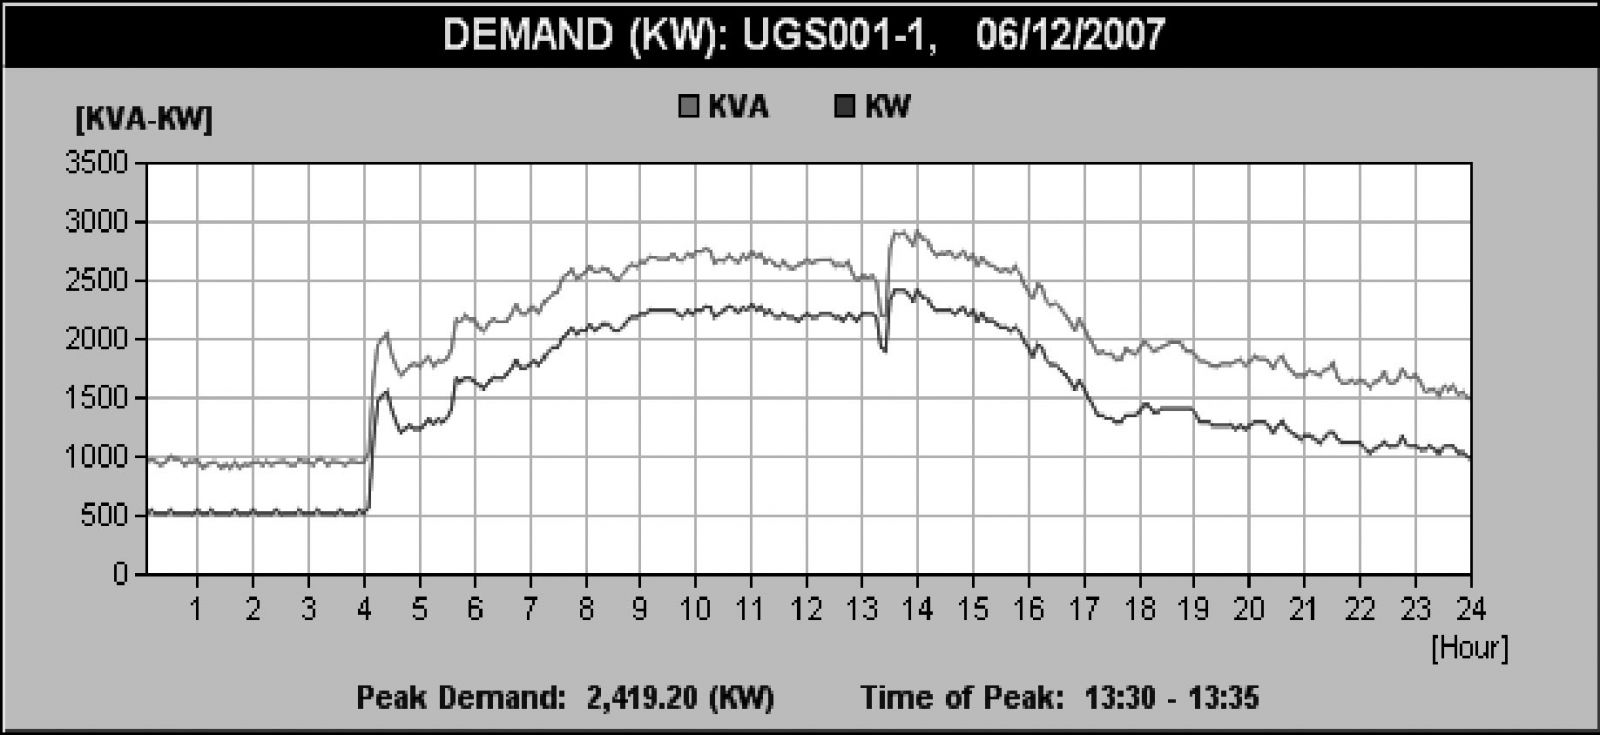 sample chart showing Demand (kw) and  Apparent Power (kVA)